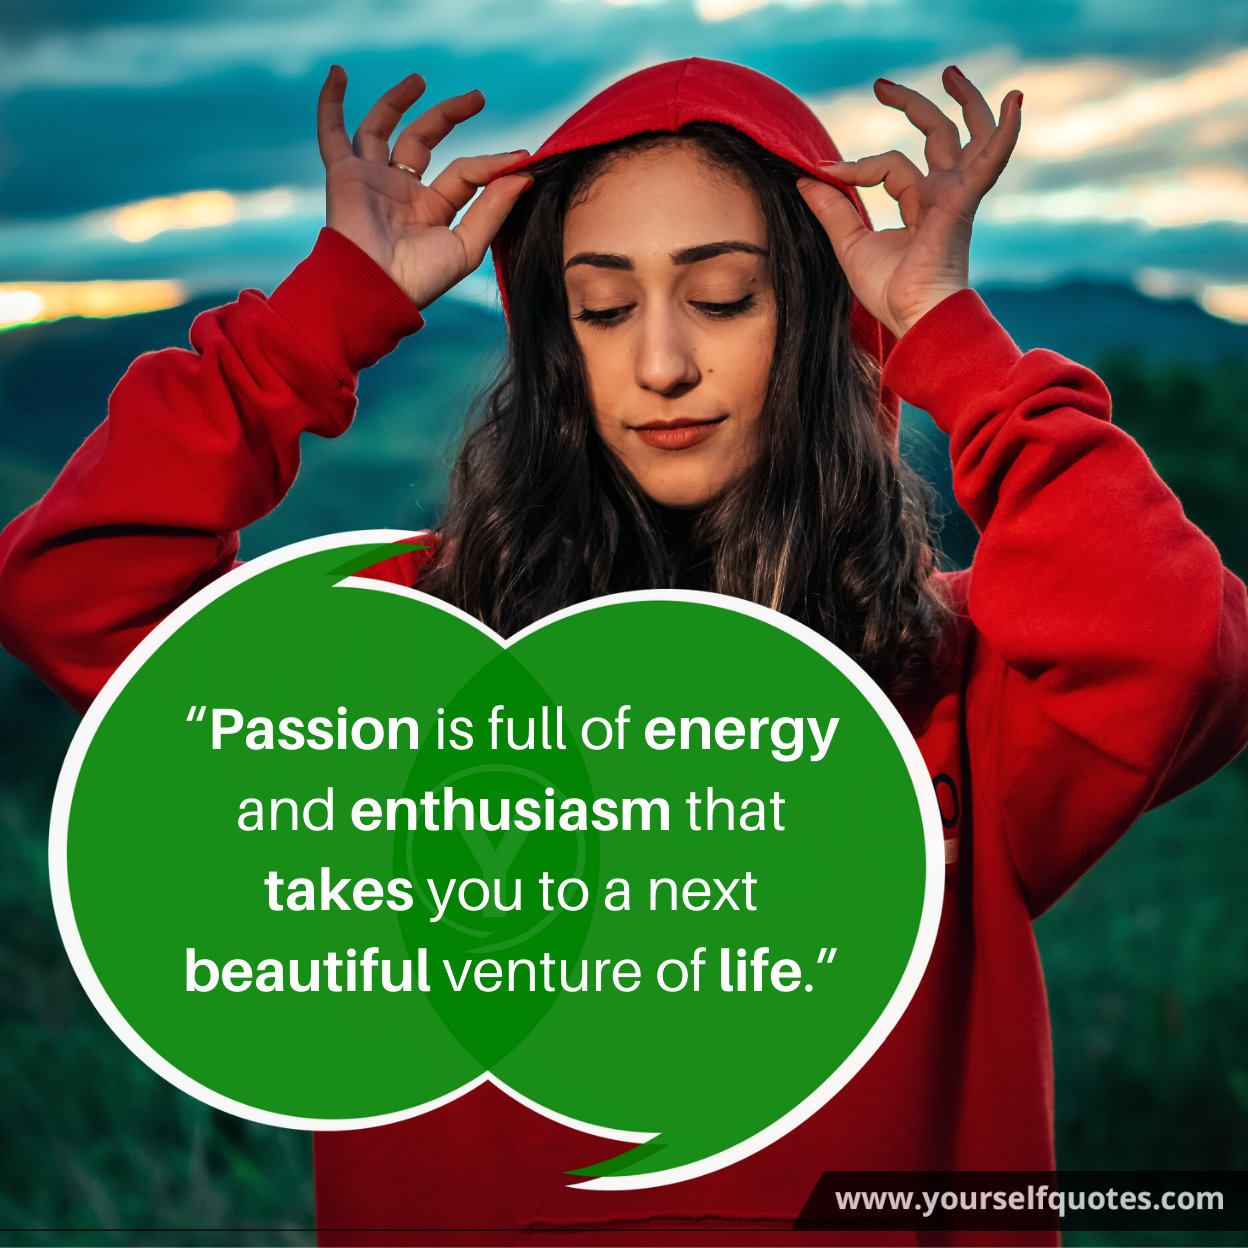 Best Quotes on Passion